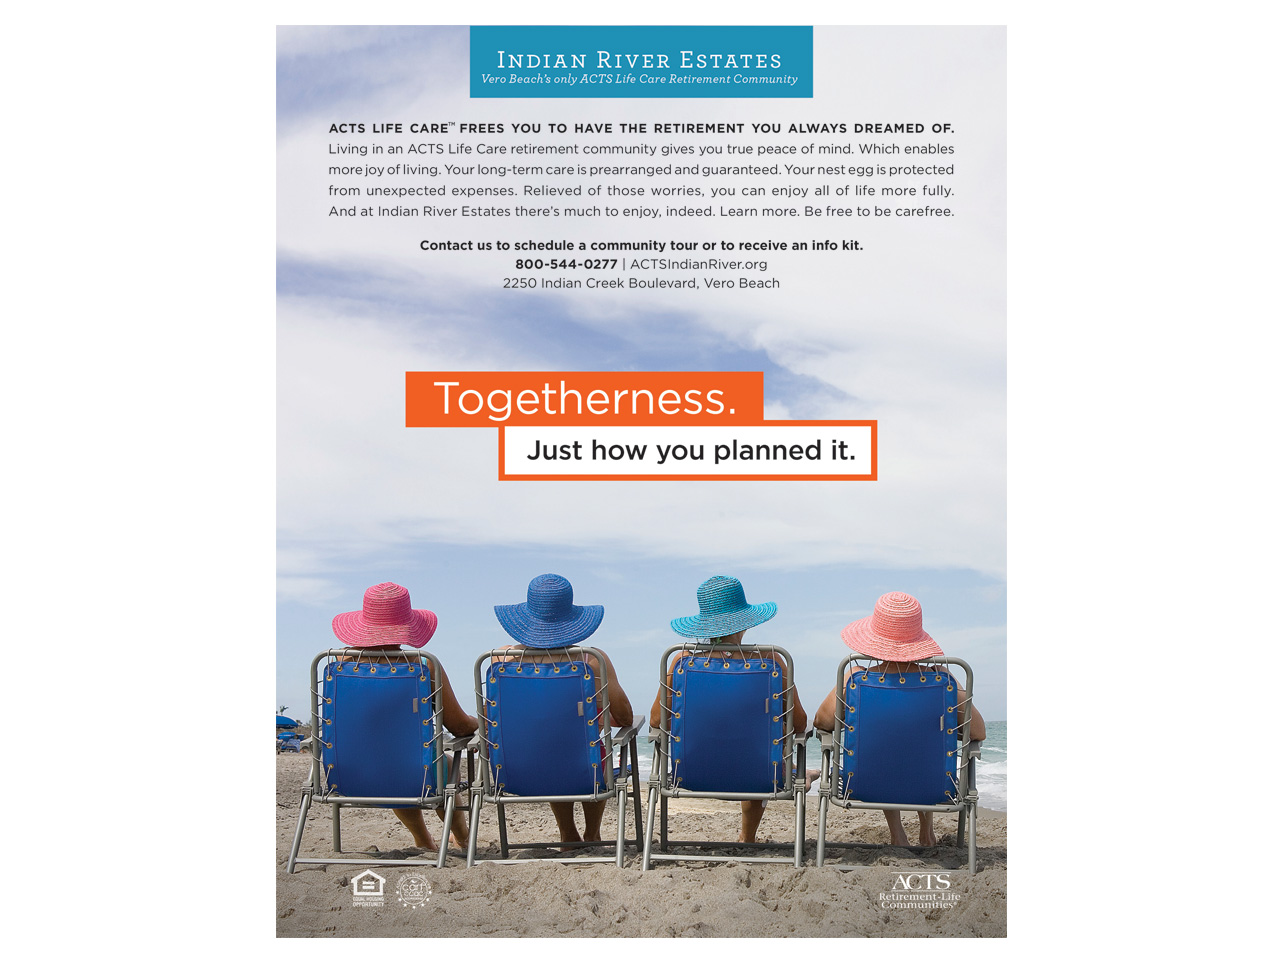 Print Ad - Togetherness